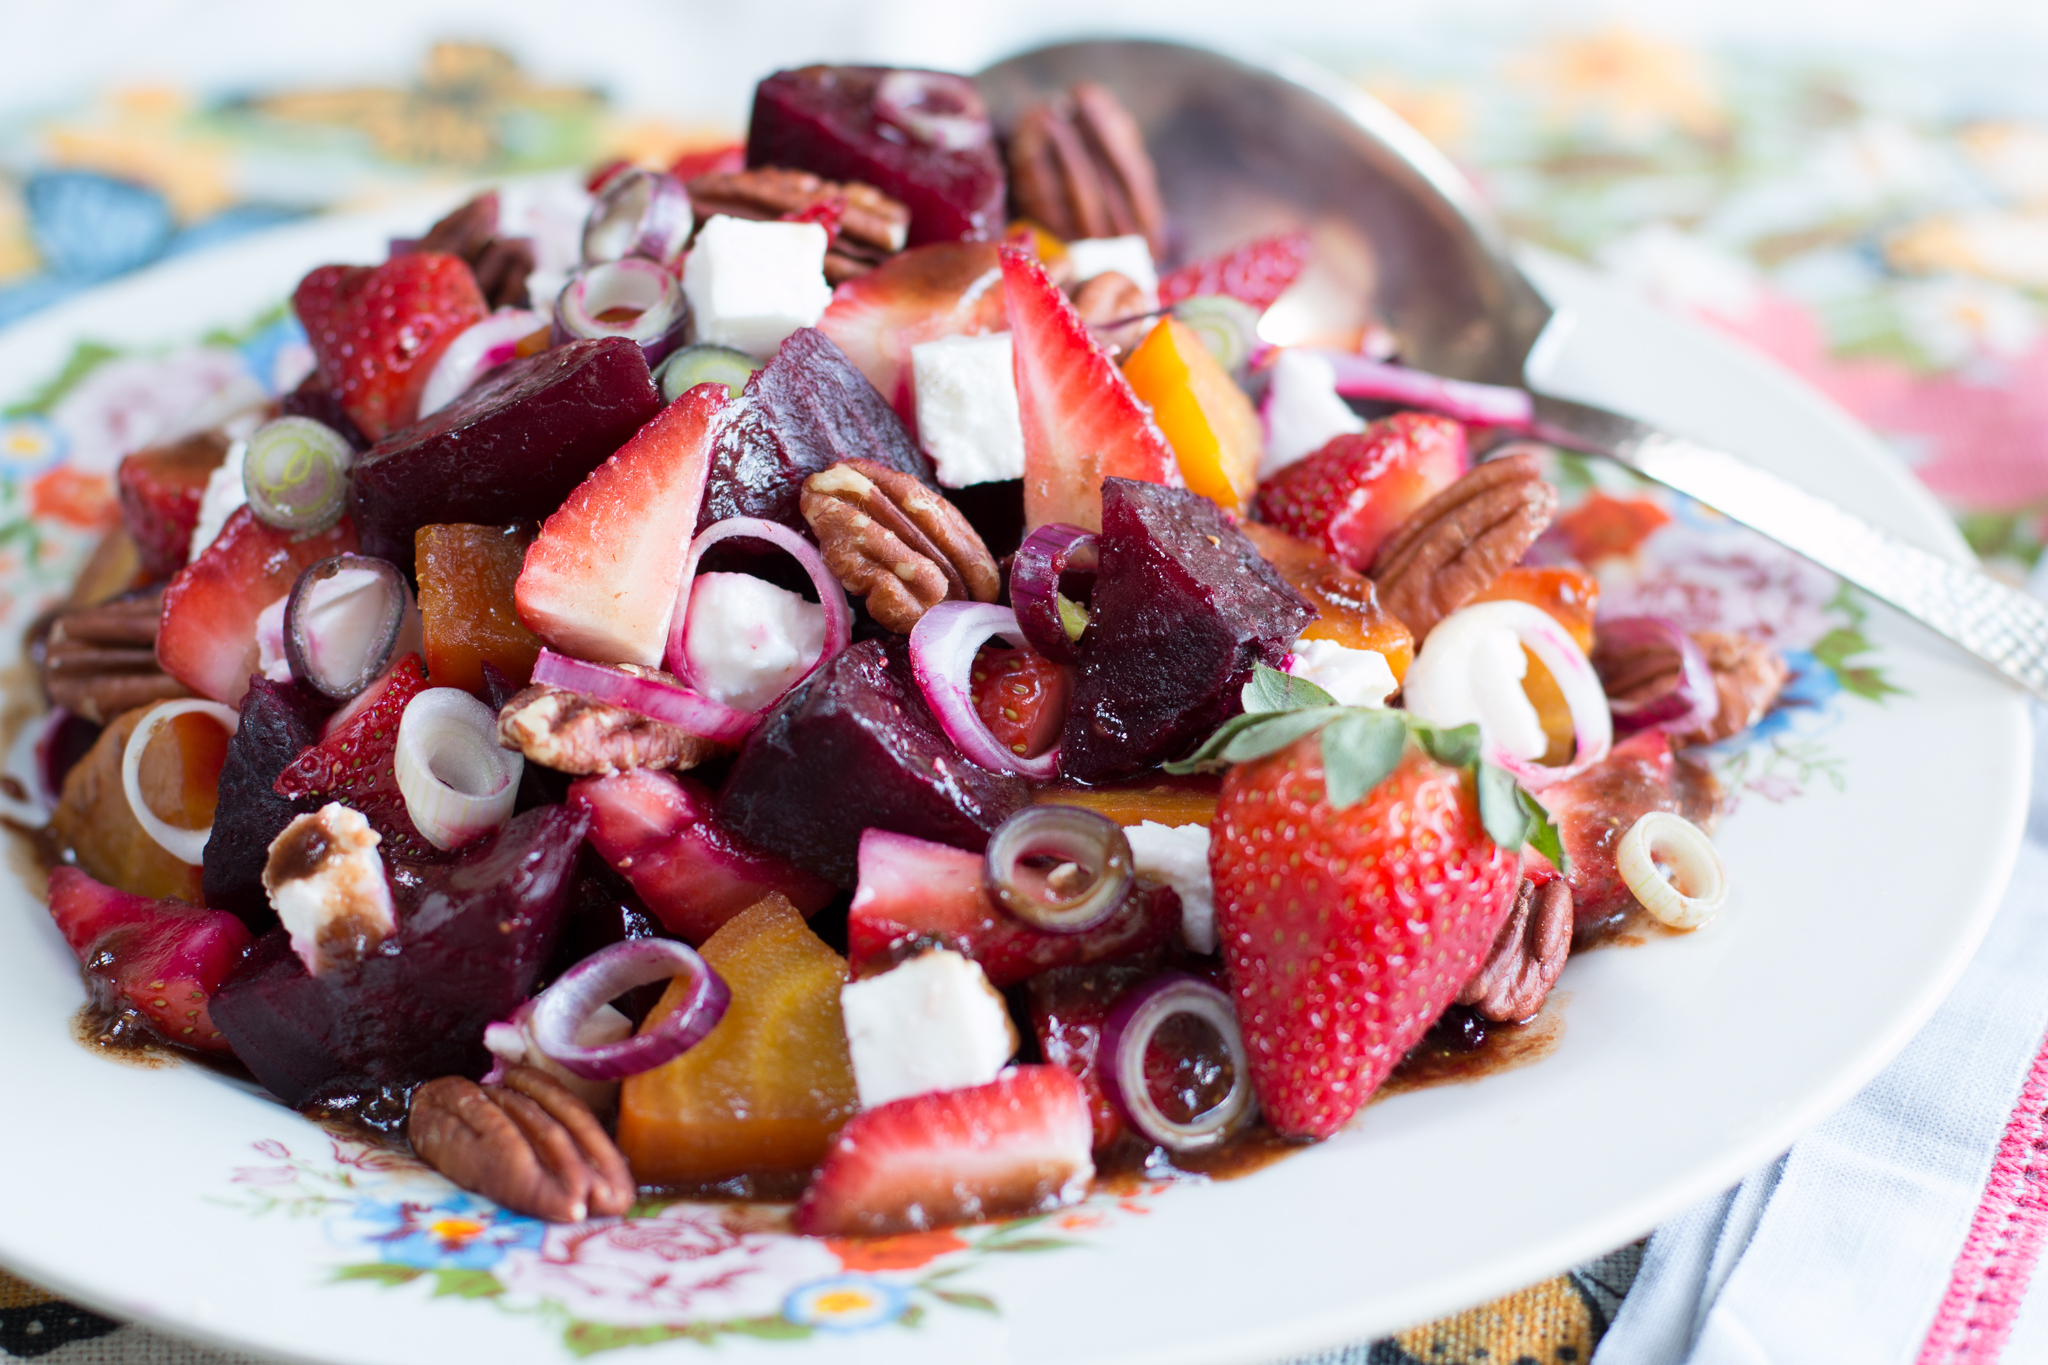 Strawberry and Beet Salad with Strawberry-Honey Balsamic Vinaigrette